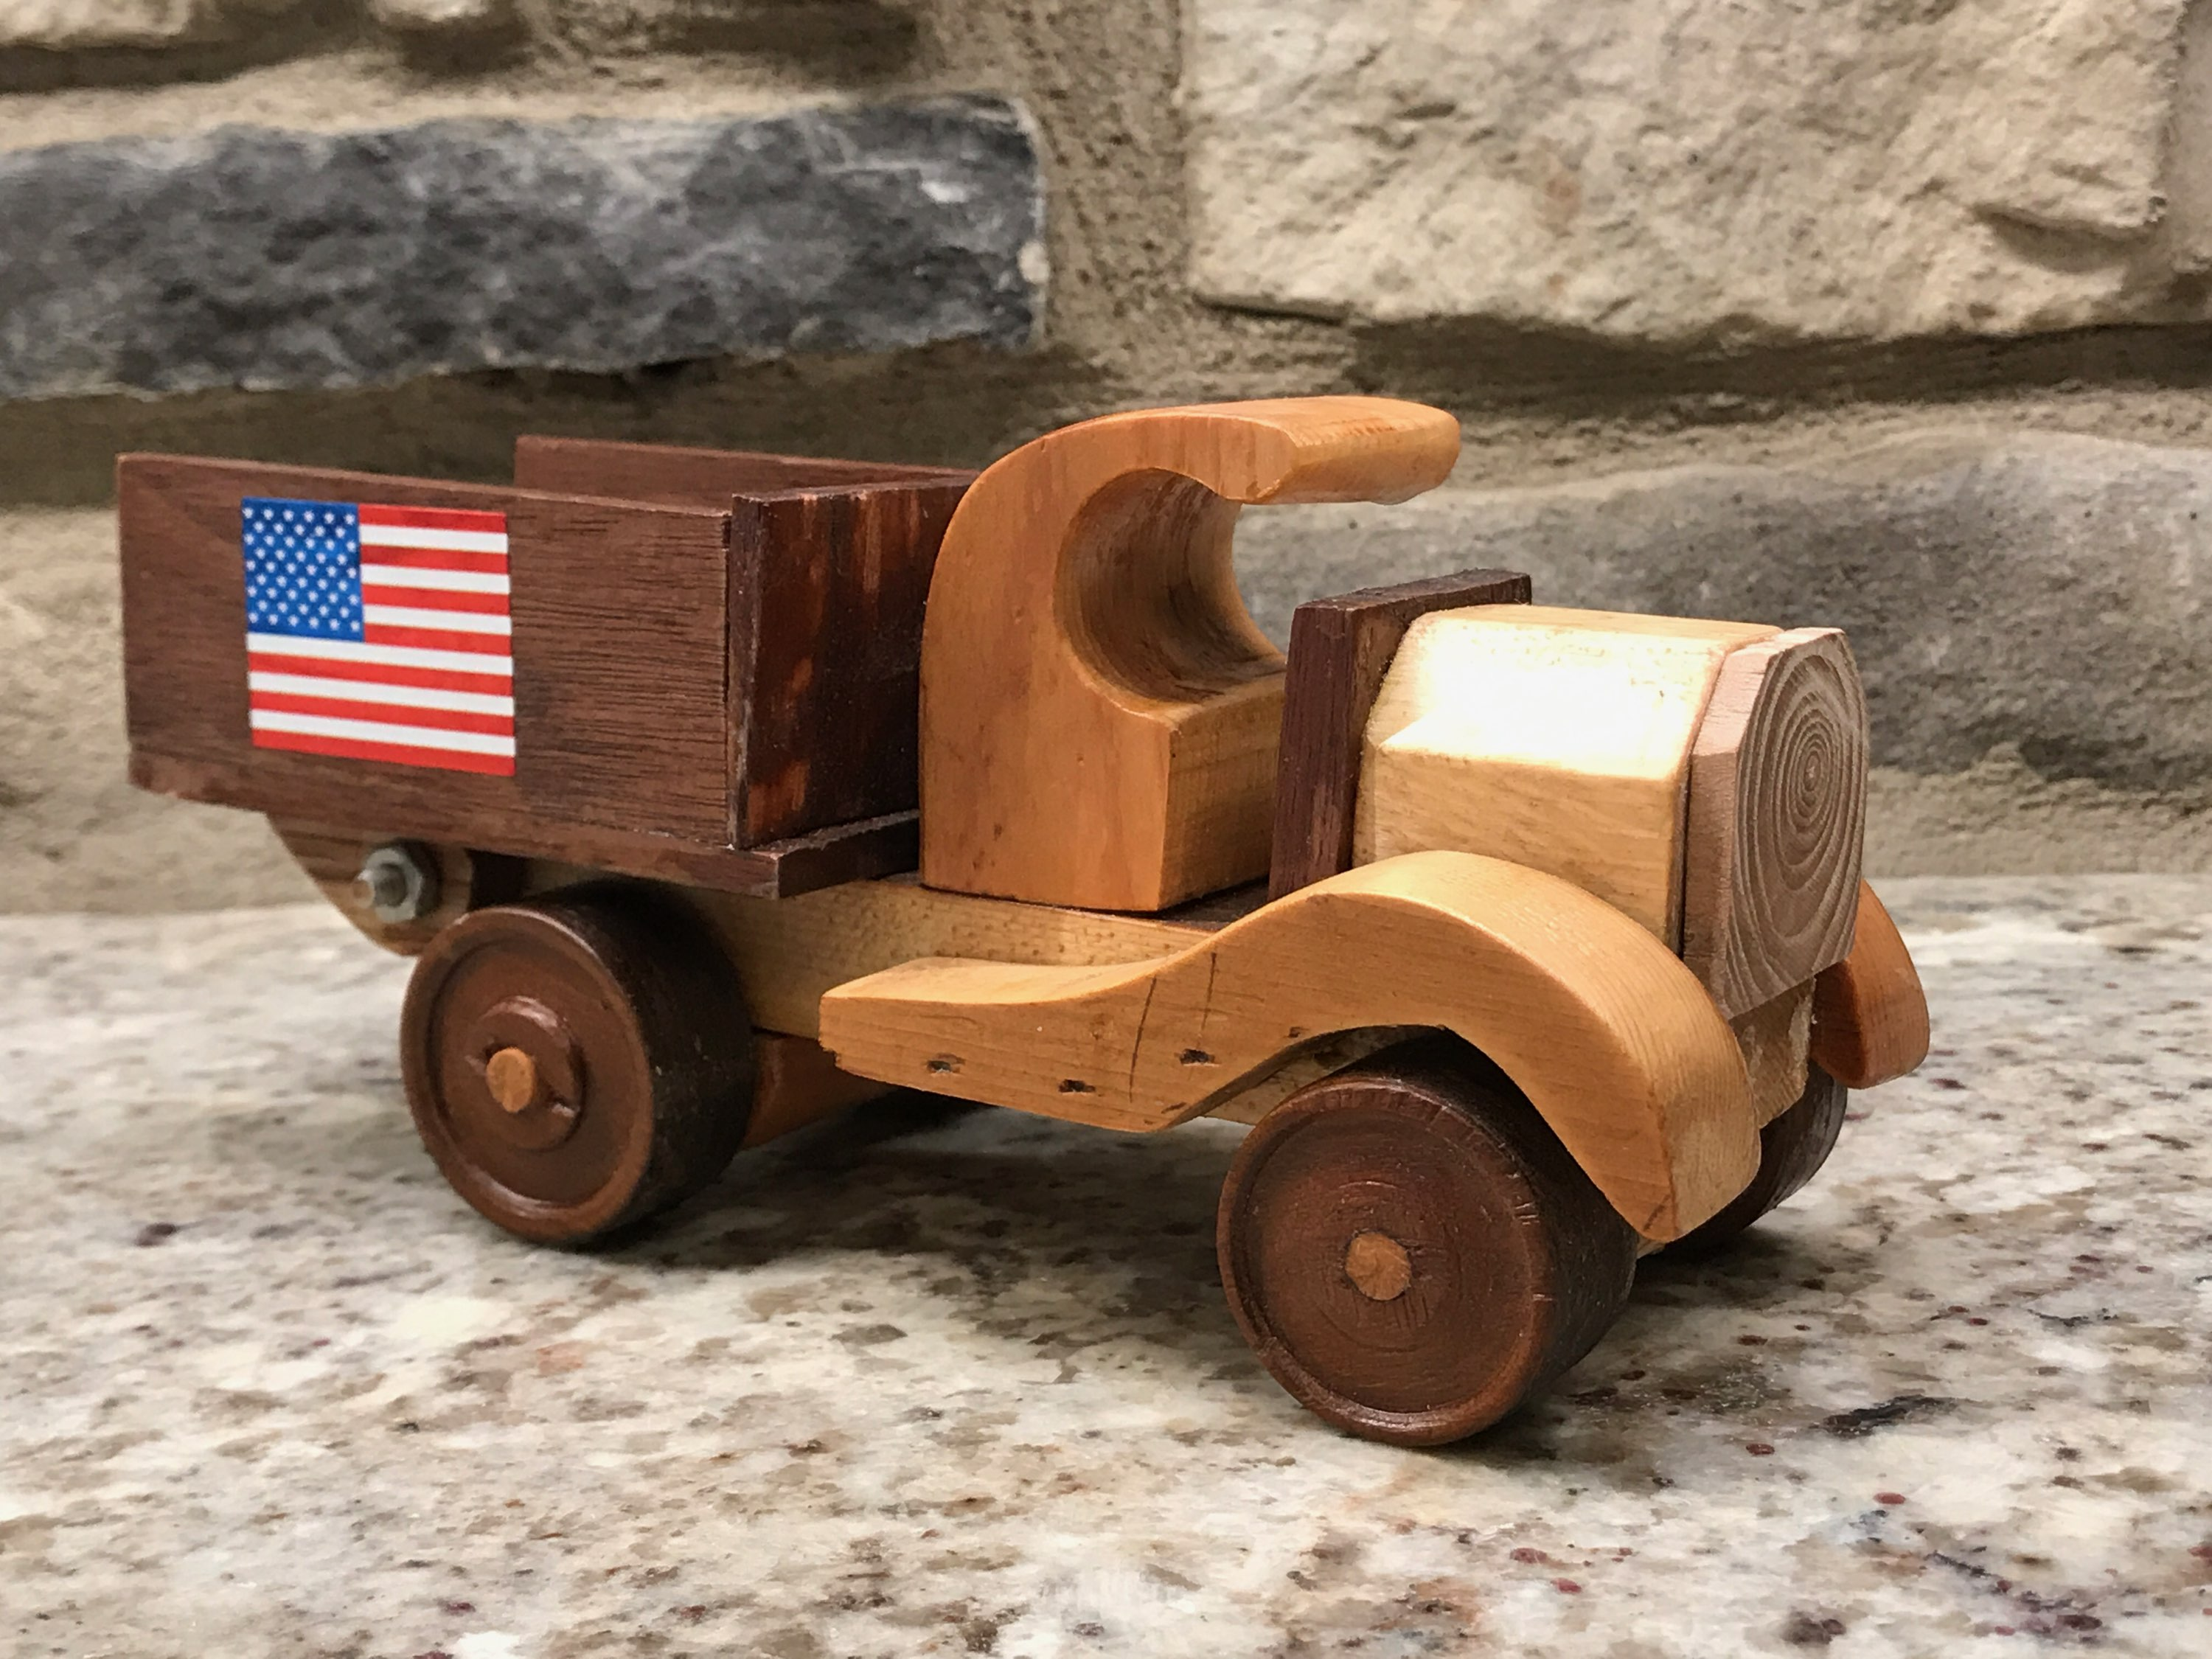 A handmade wooden toy truck with the American flag